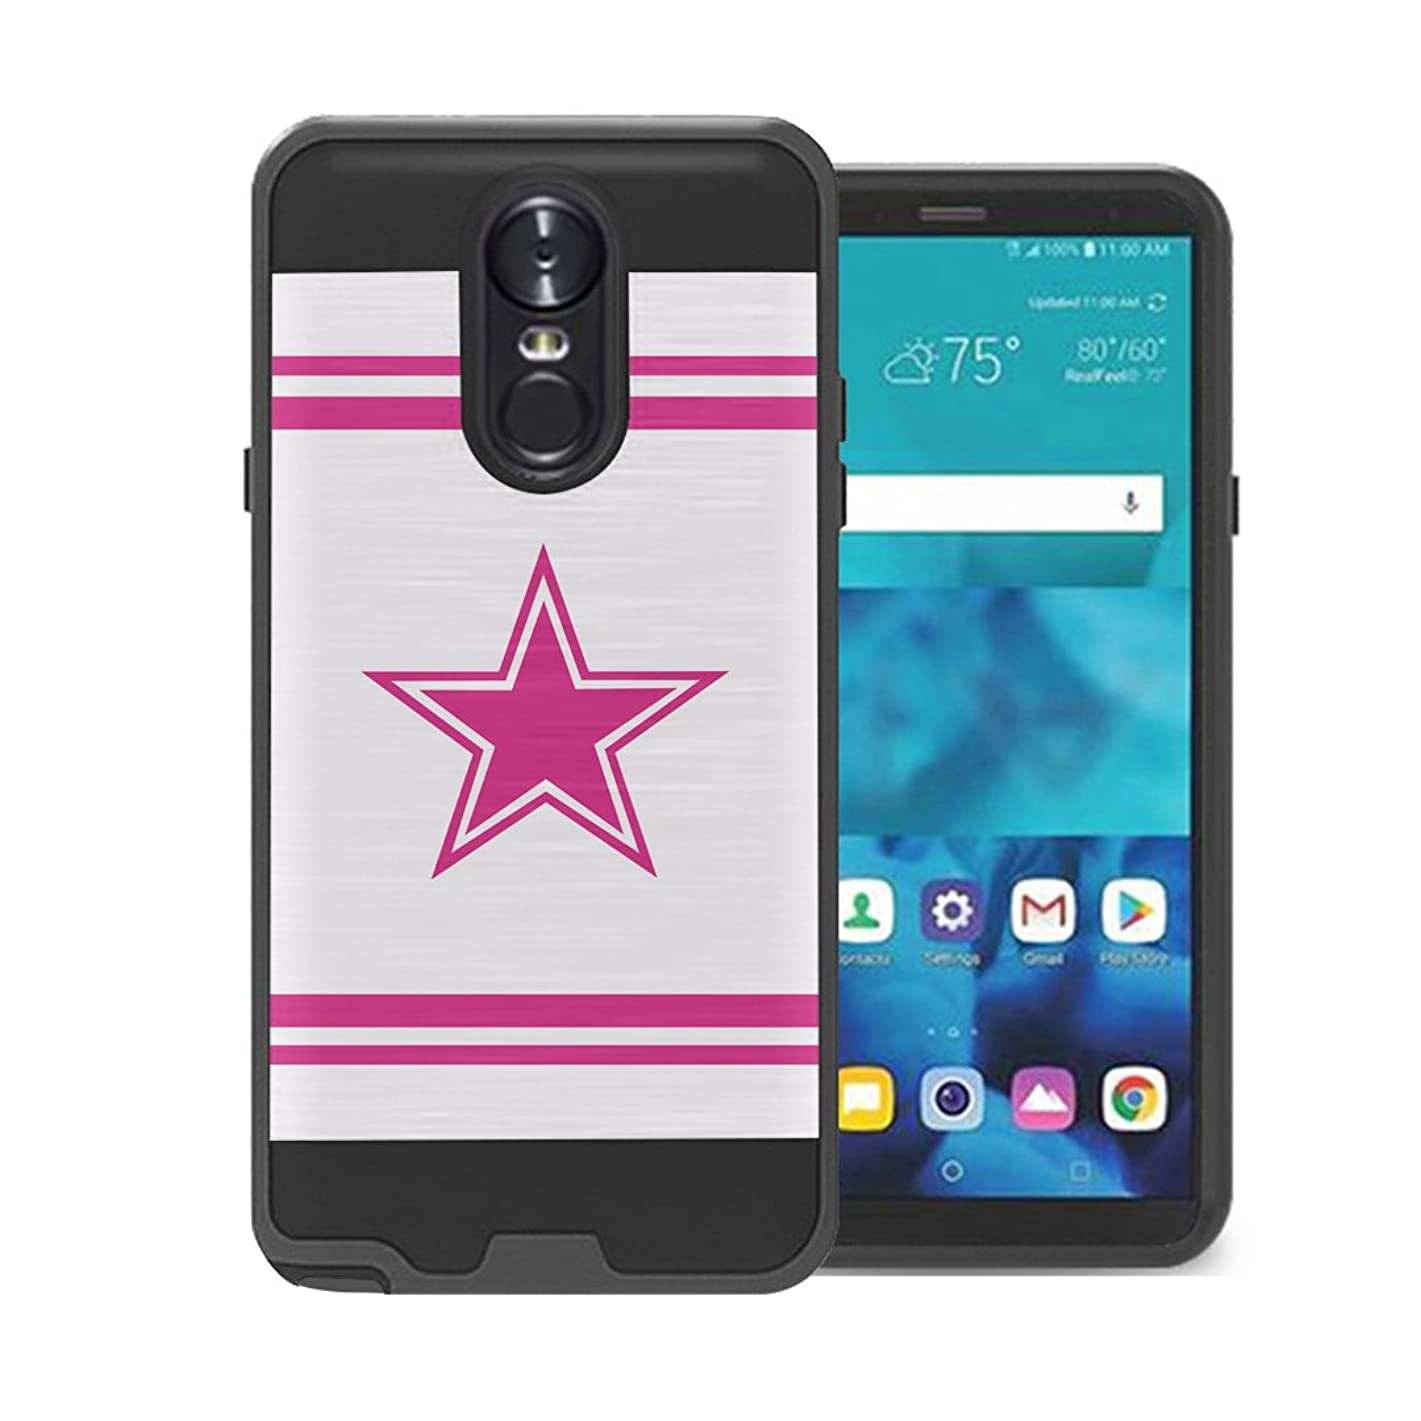 Izumi Case Compatible with LG Stylo 4 Plus, LG Stylo 4, LG Q Stylus [Hybrid Fusion Supports Wireless Charging Dual Layer Slick Armor Case Black] for LG Stylo 4 - (Pink Cowboy)